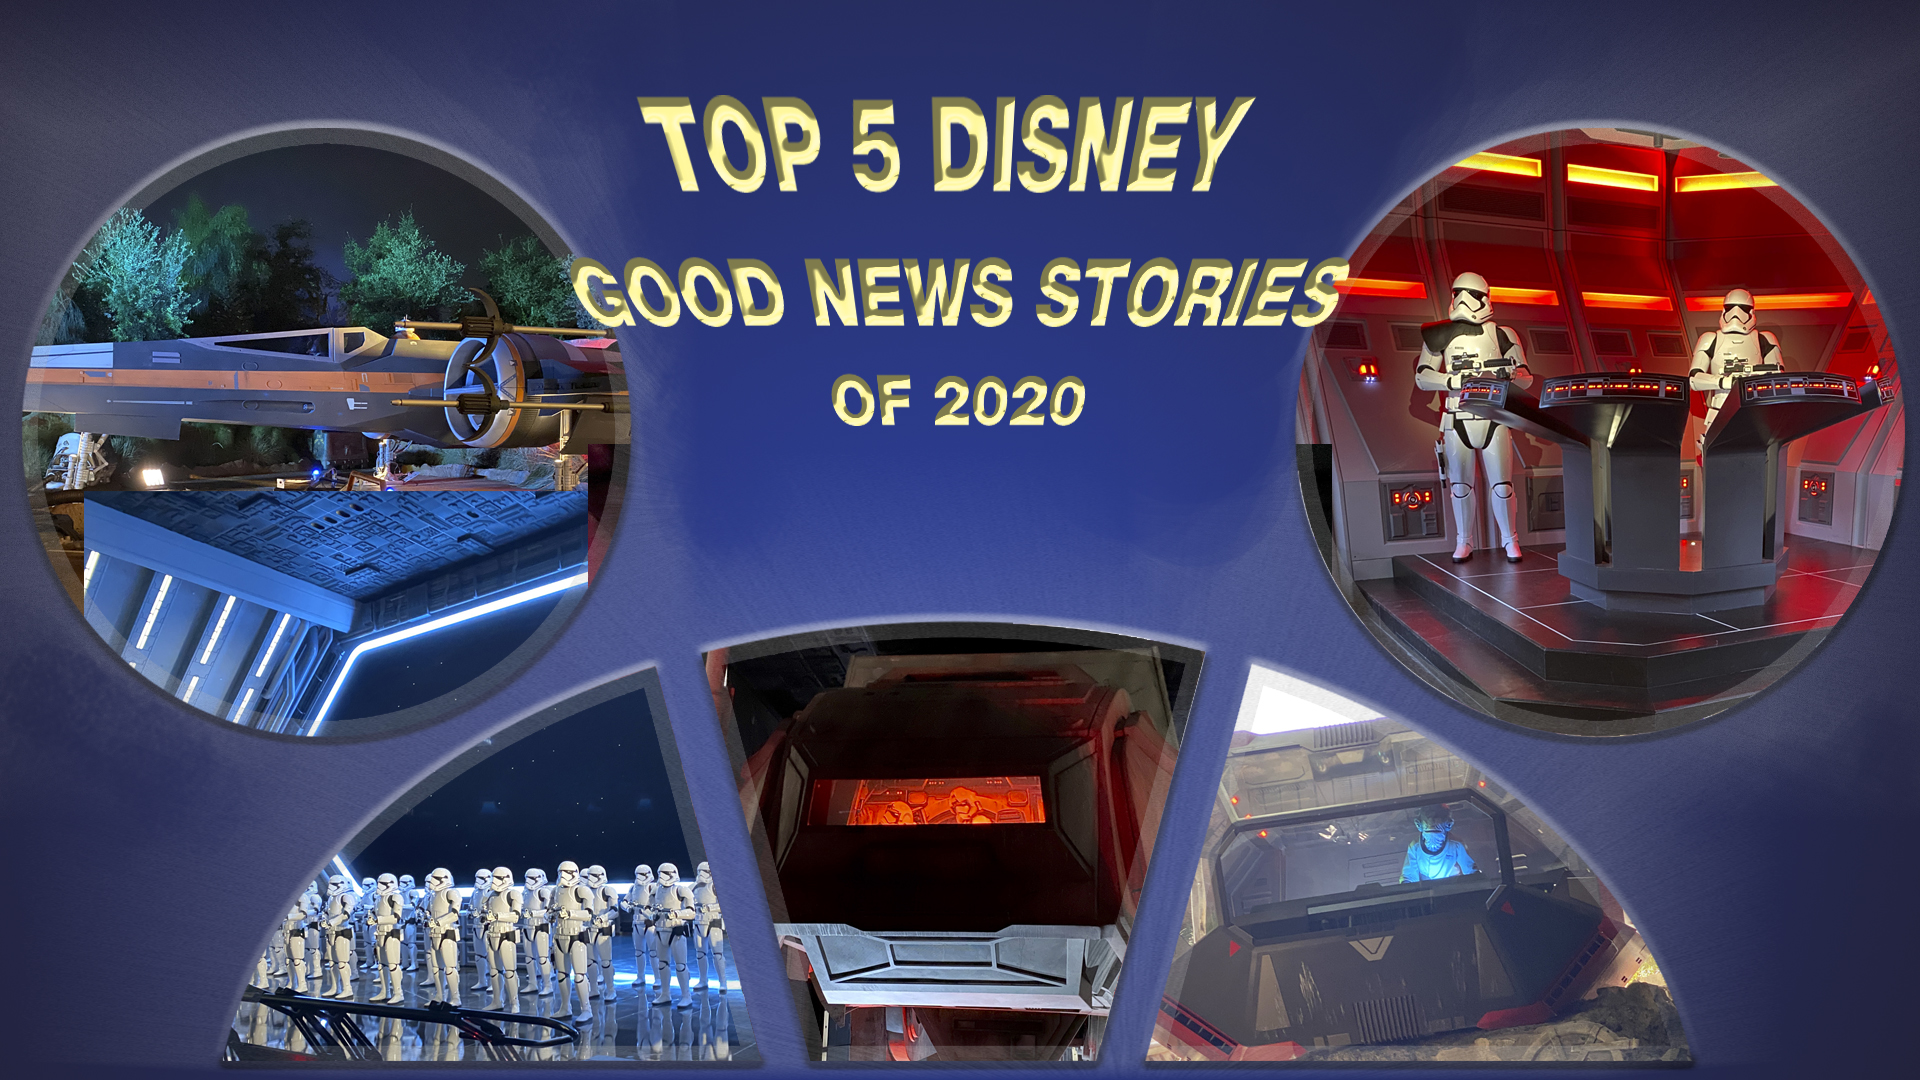 Rise of the Resistance – Top 5 Good News Disney Stories of 2020 – #5